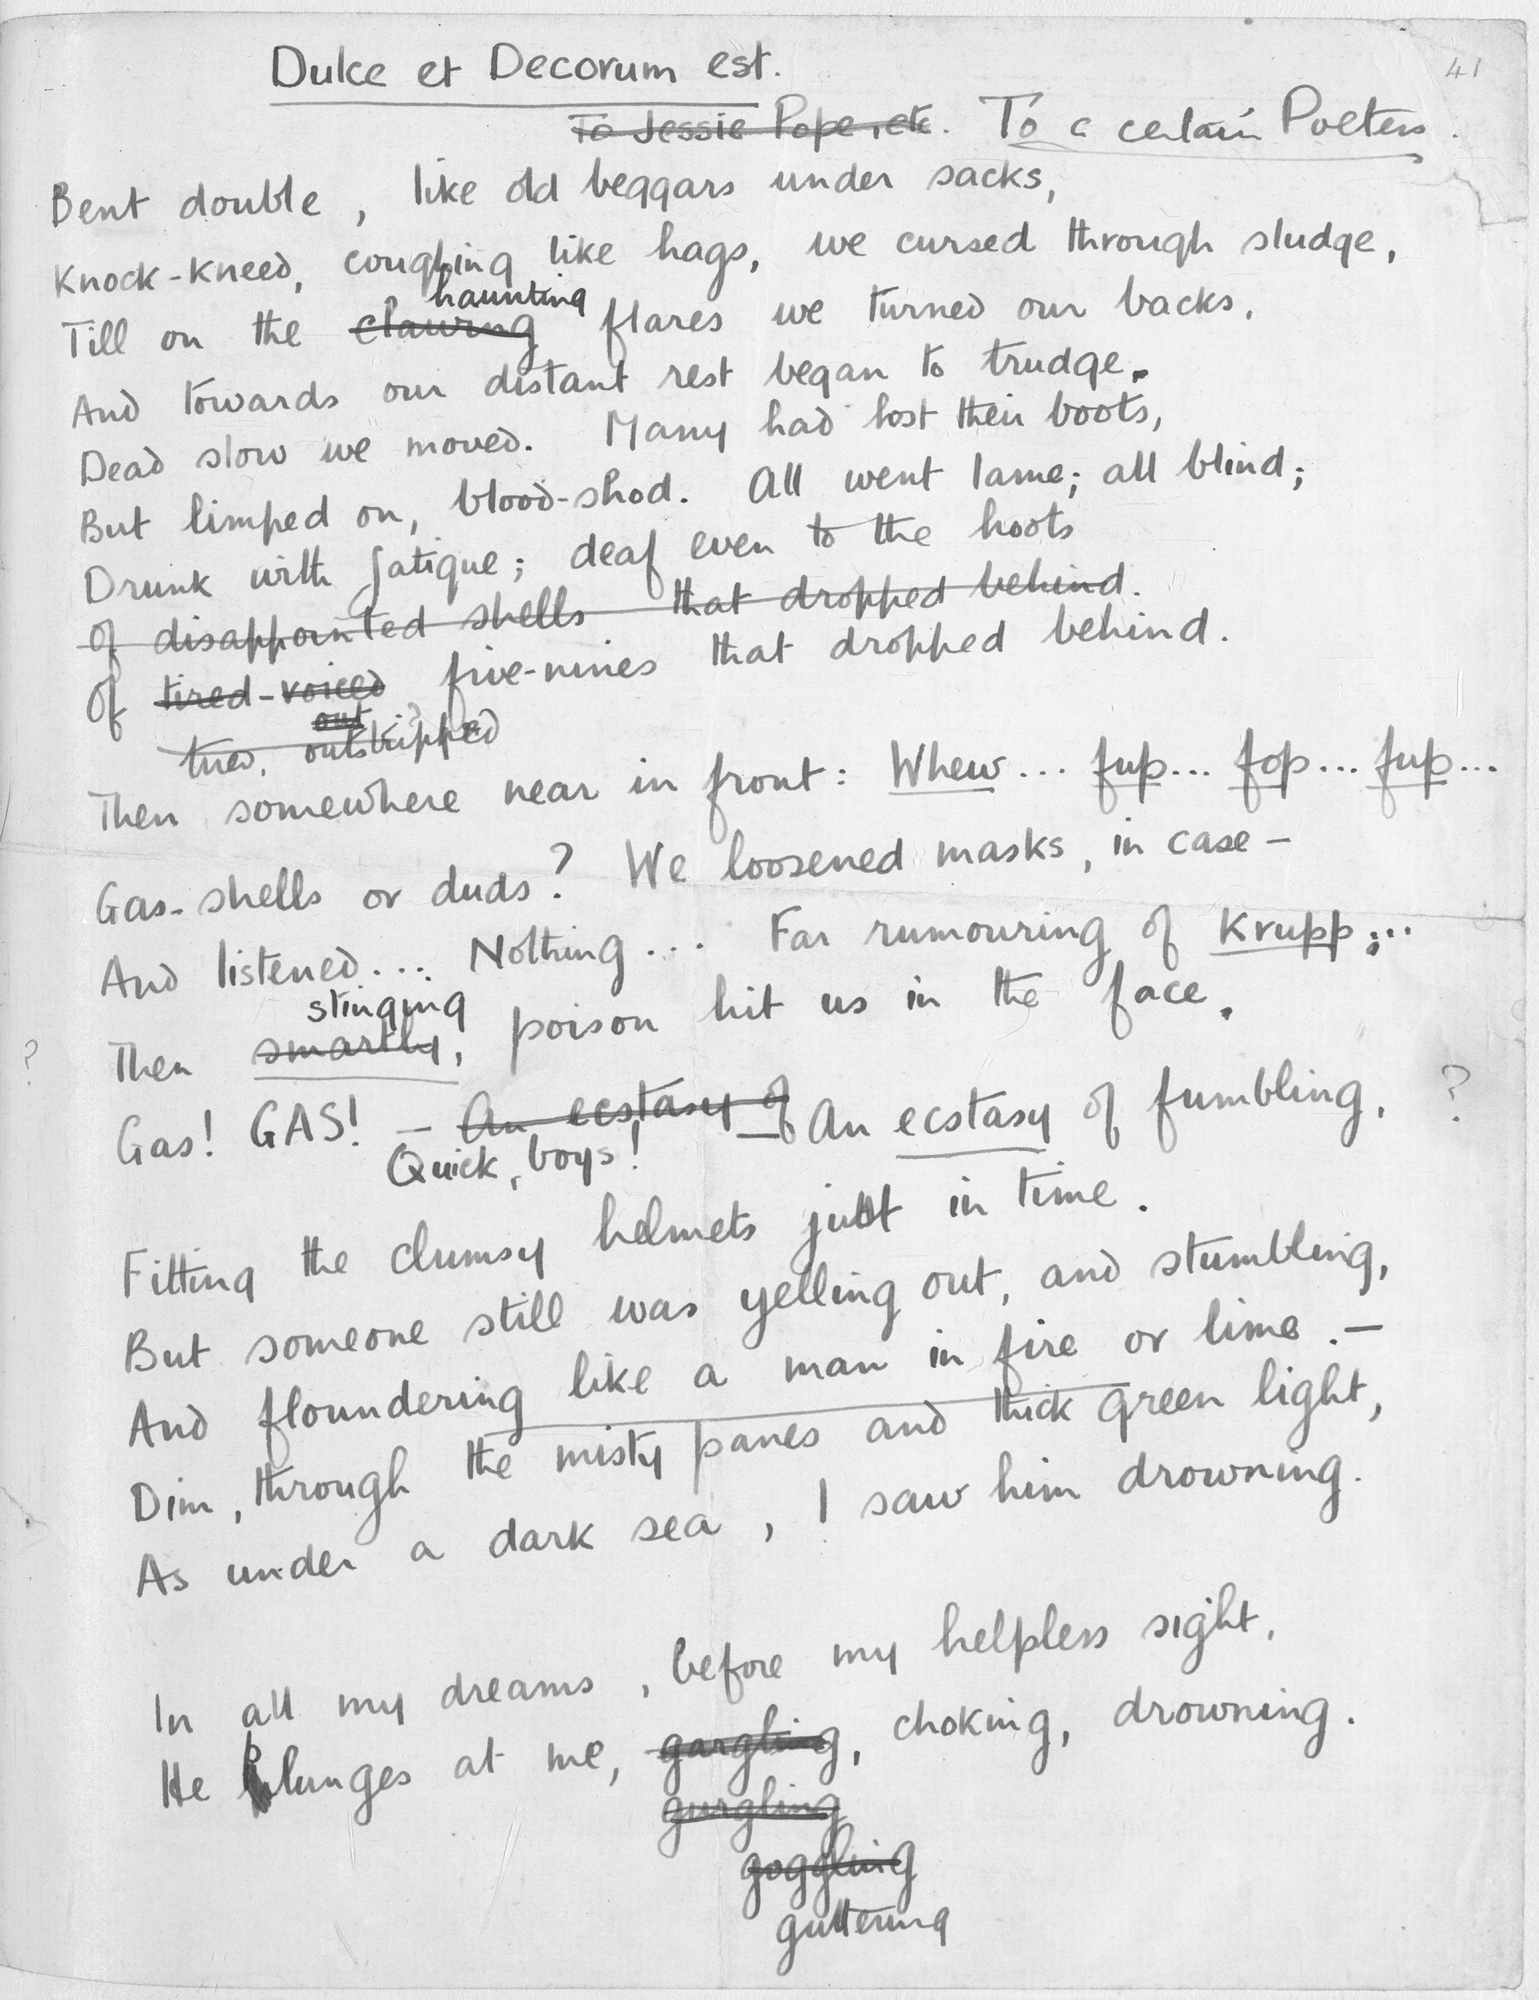 dulce et decorum est using marxist theory - the poem 'dulce et decorum est' by wilfred owen portrays the horrors of world war i with the horrific imagery and the startling use of words he uses he .